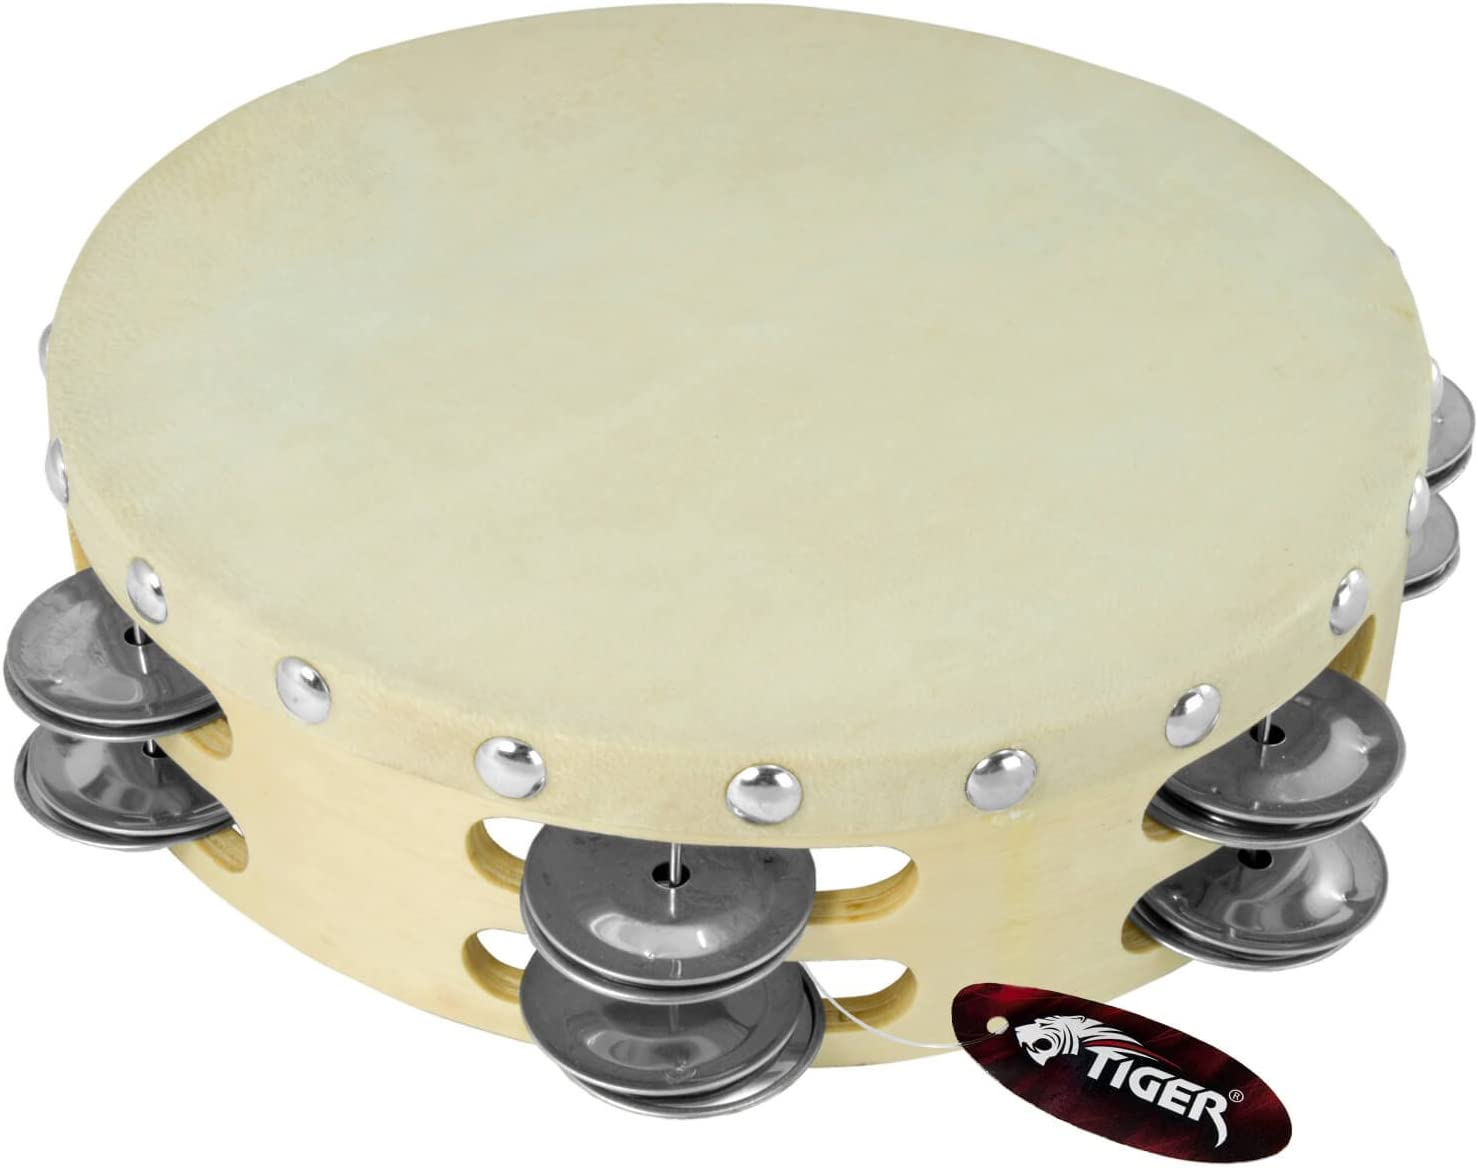 Tiger Music At the price 1 year warranty Tambourine TAM98-08 8-inch